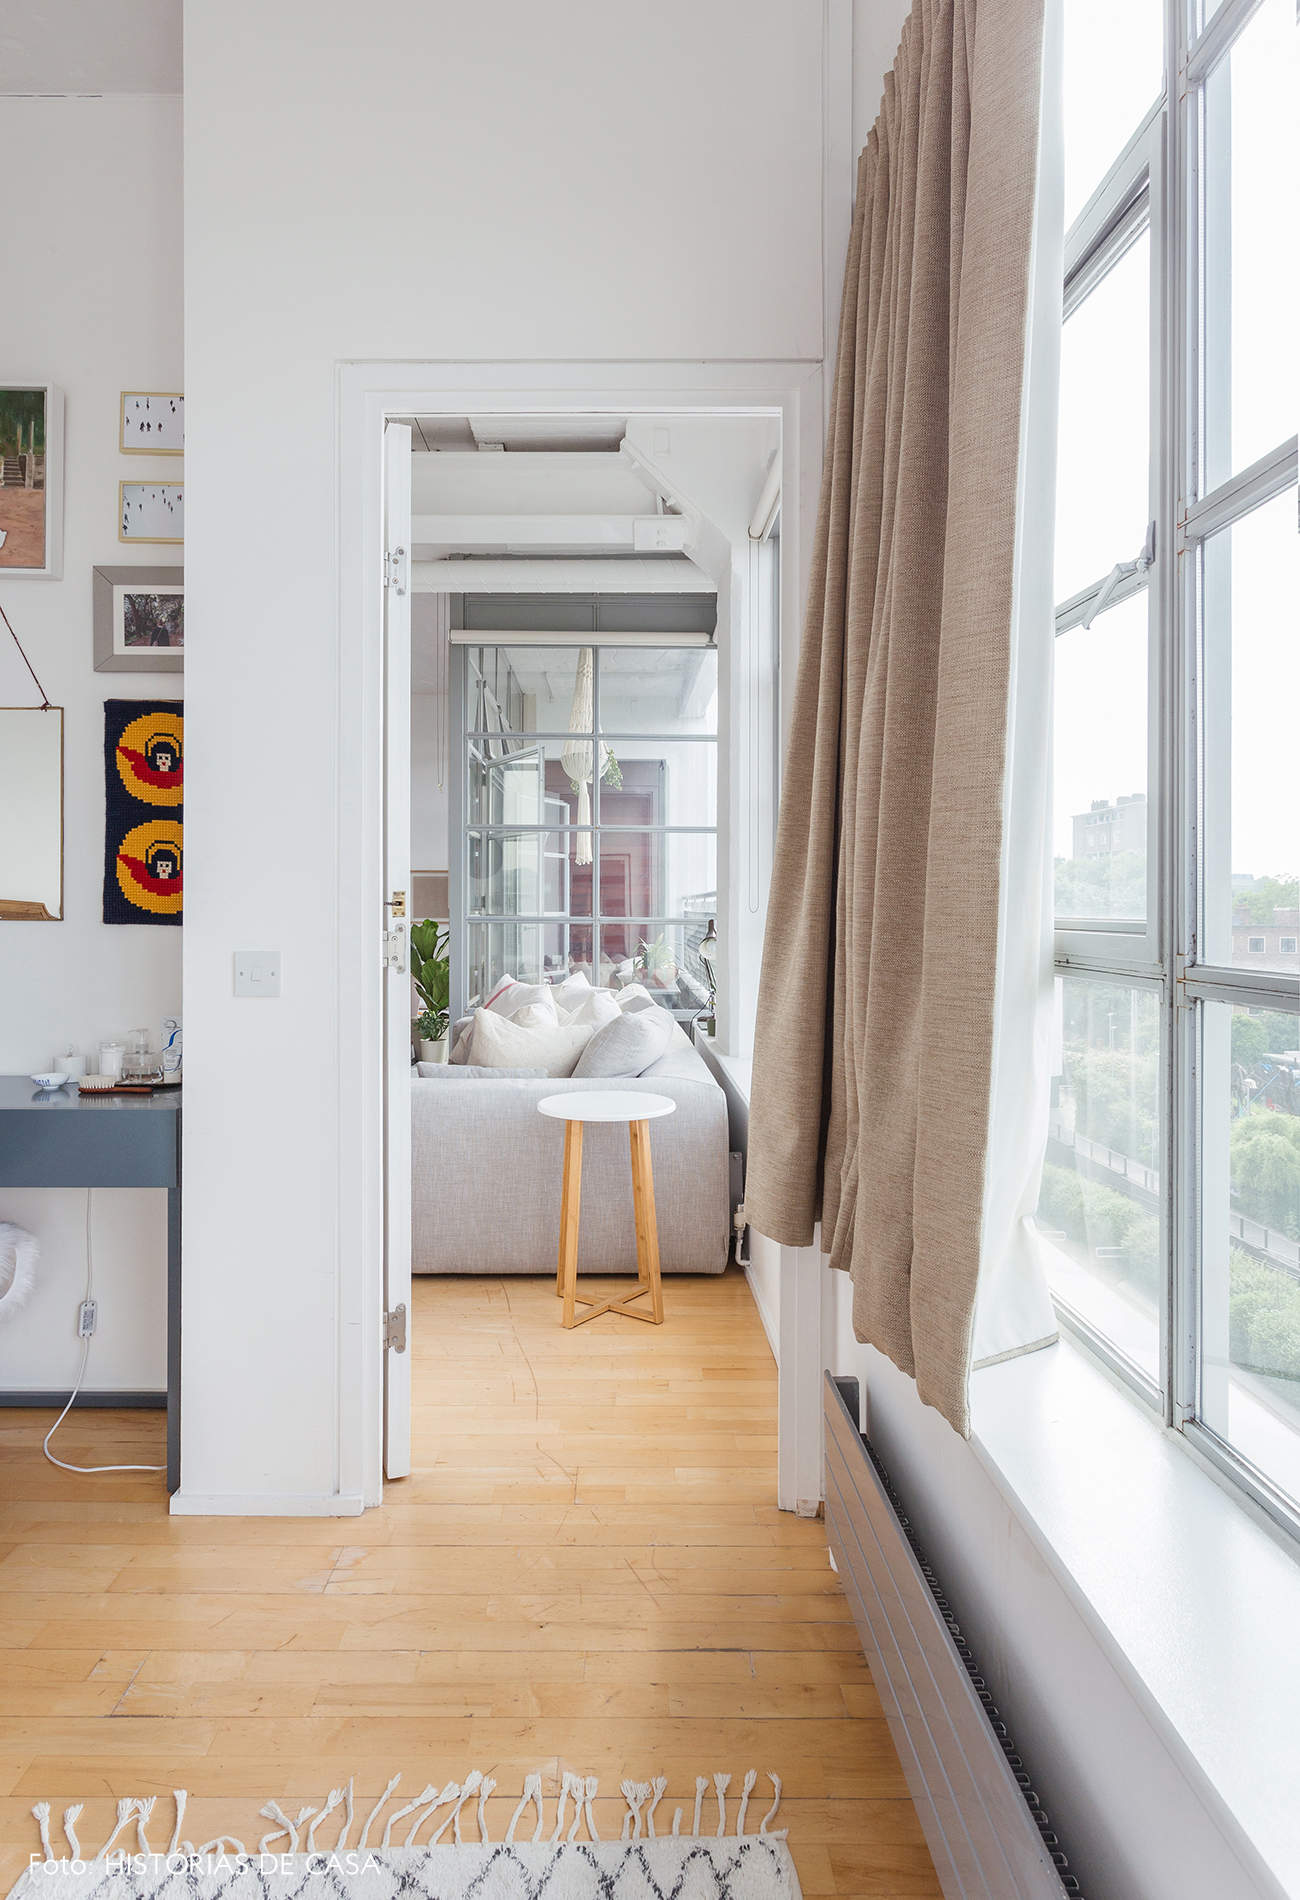 Canal Building apartment in London